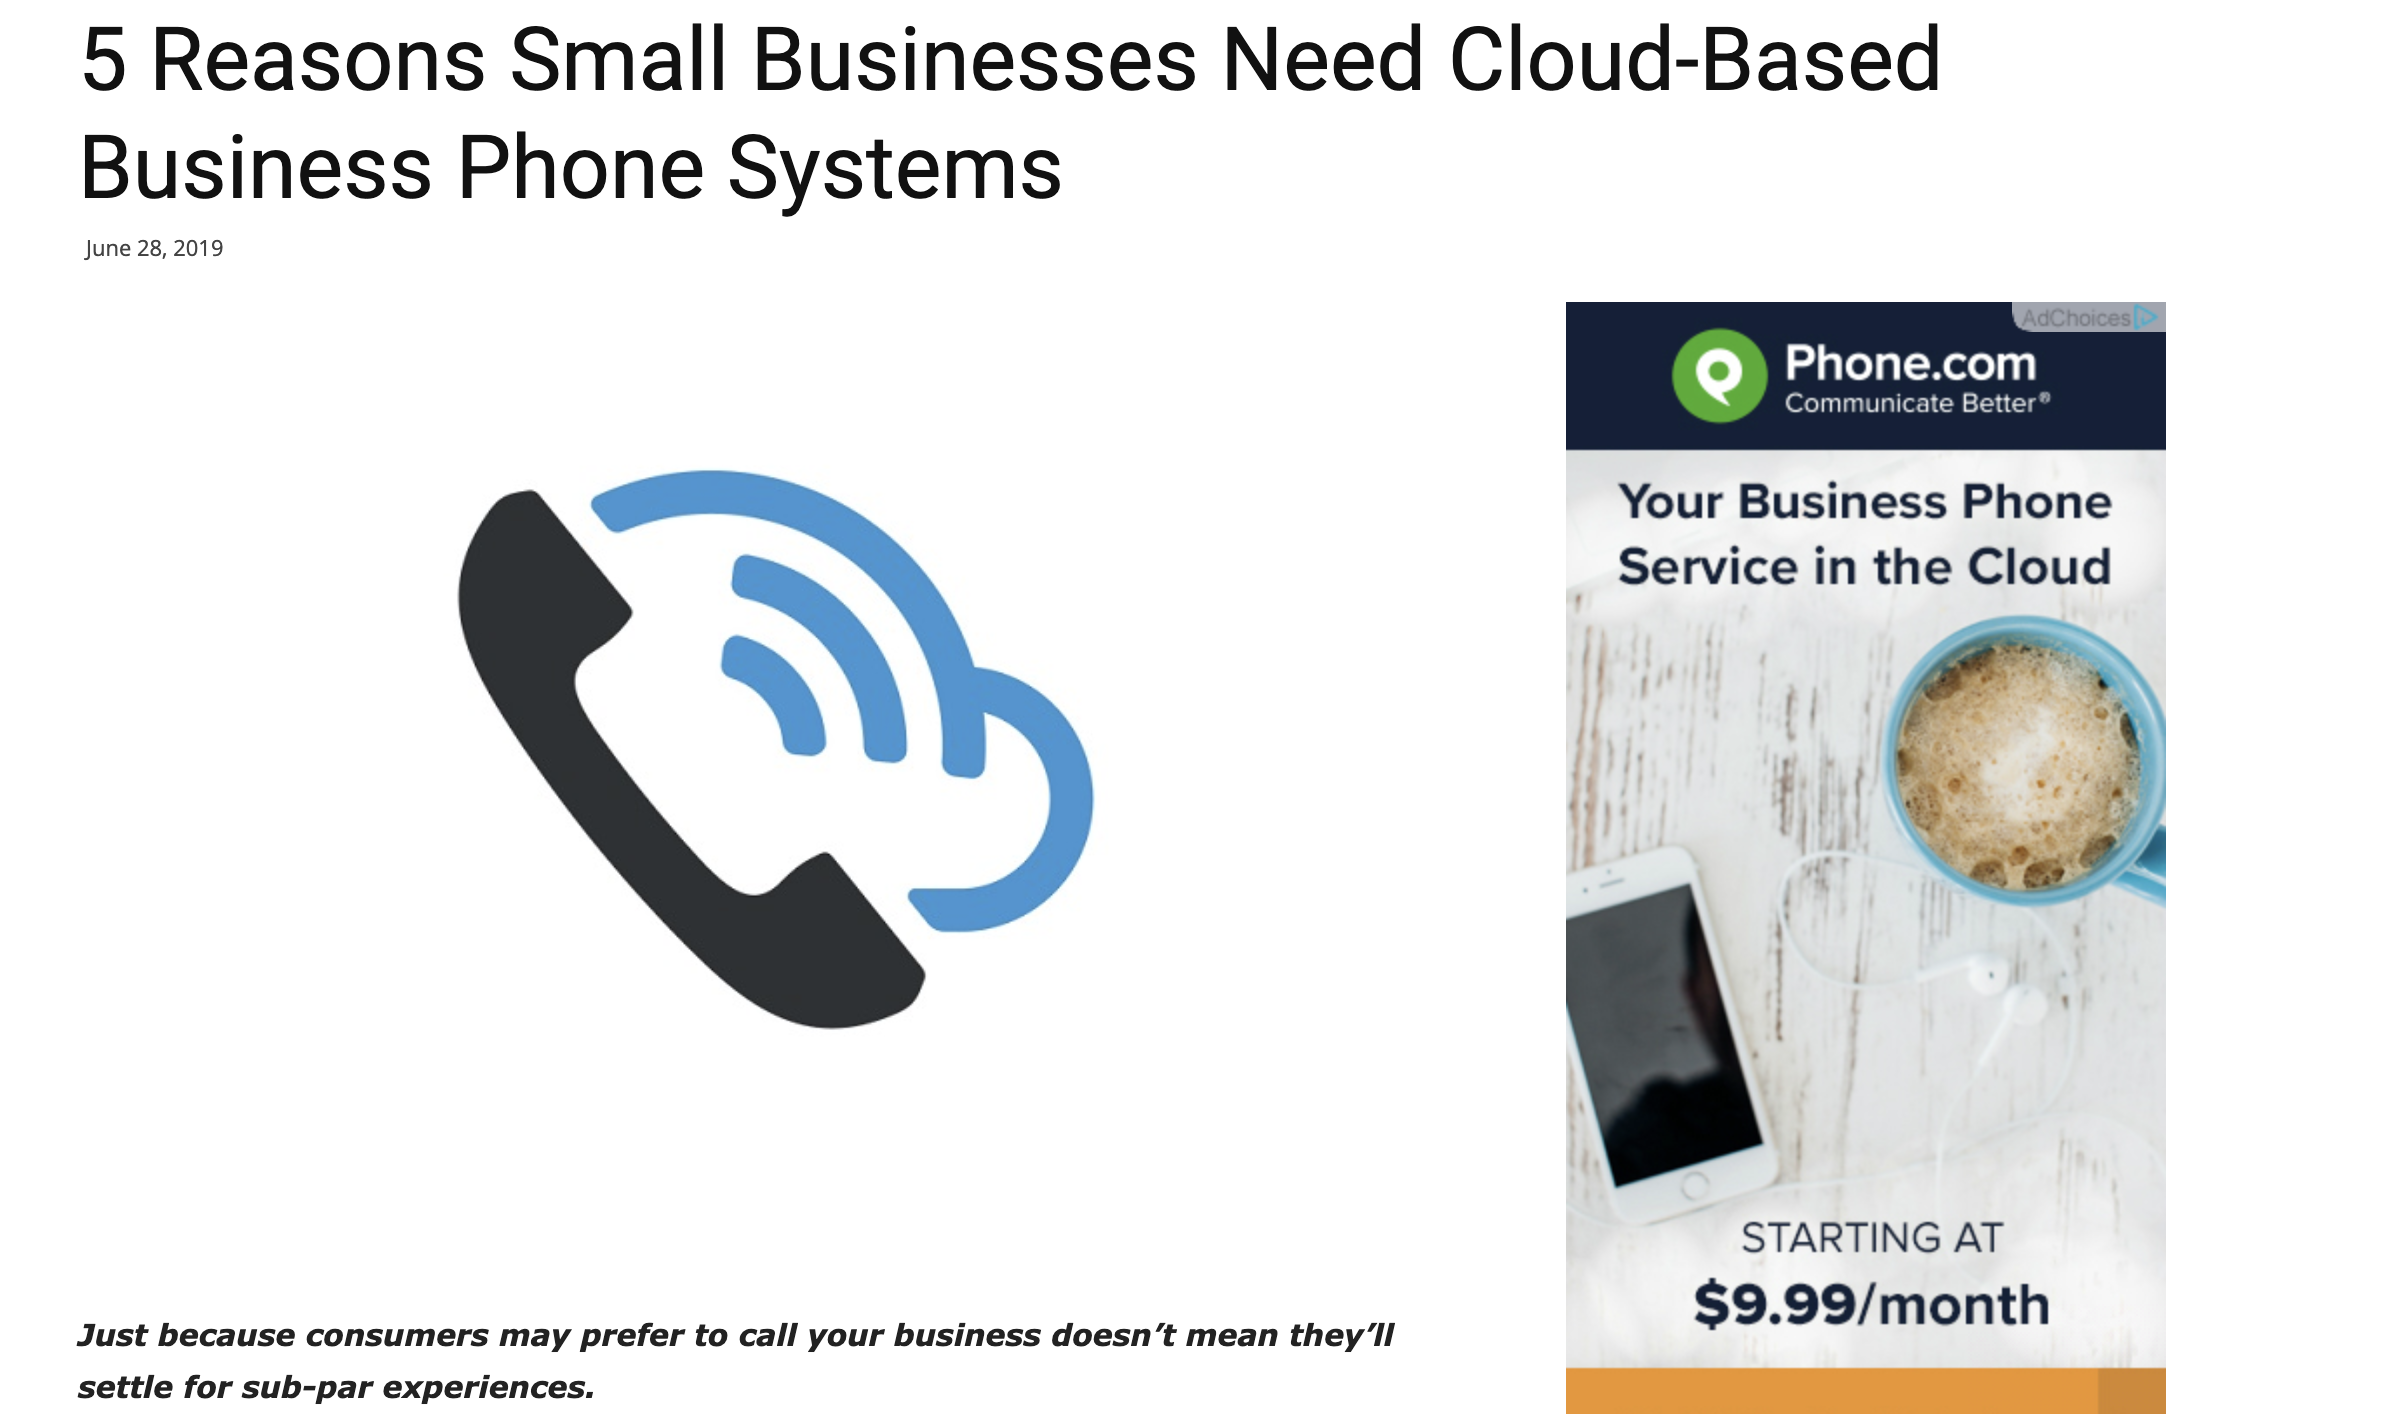 5 Reasons Small Businesses Need Cloud-Based Business Phone Systems